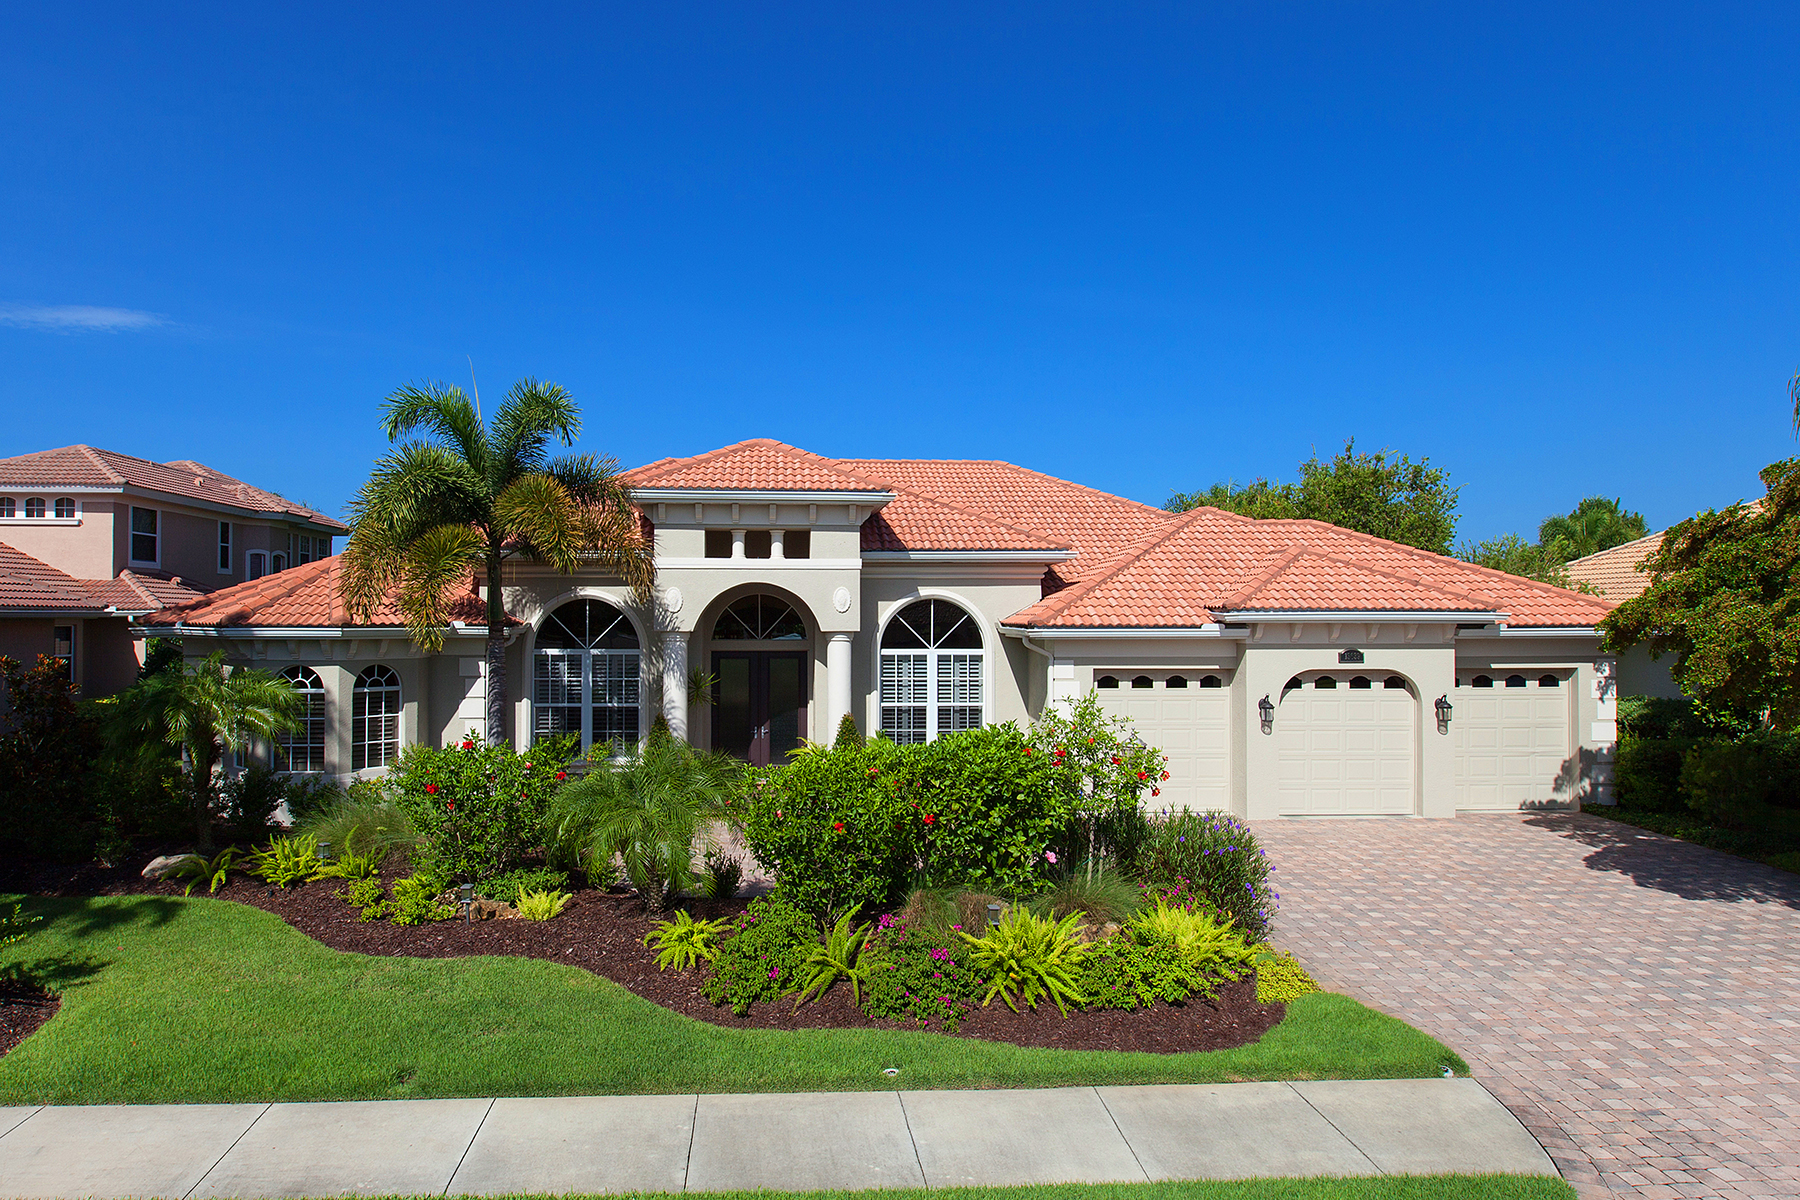 Single Family Home for Sale at LEGENDS WALK 13639 Legends Walk Terr Lakewood Ranch, Florida 34202 United States